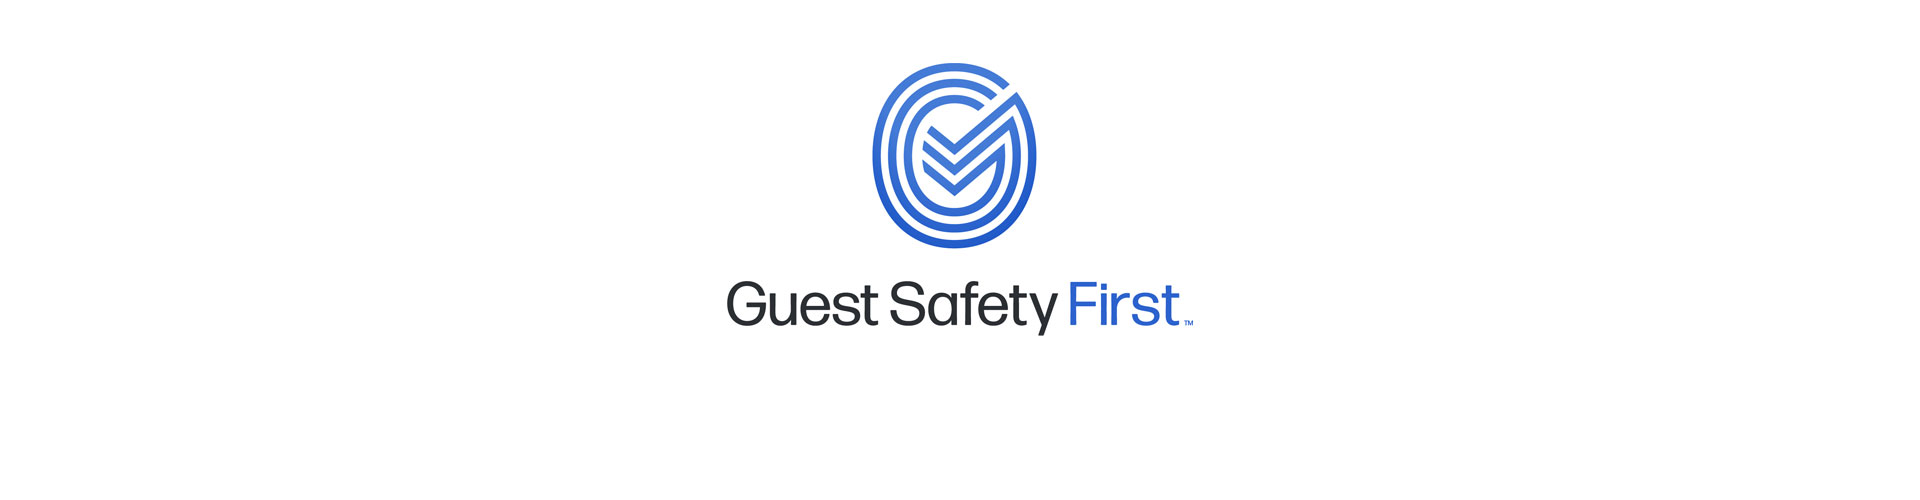 Guest Safety First